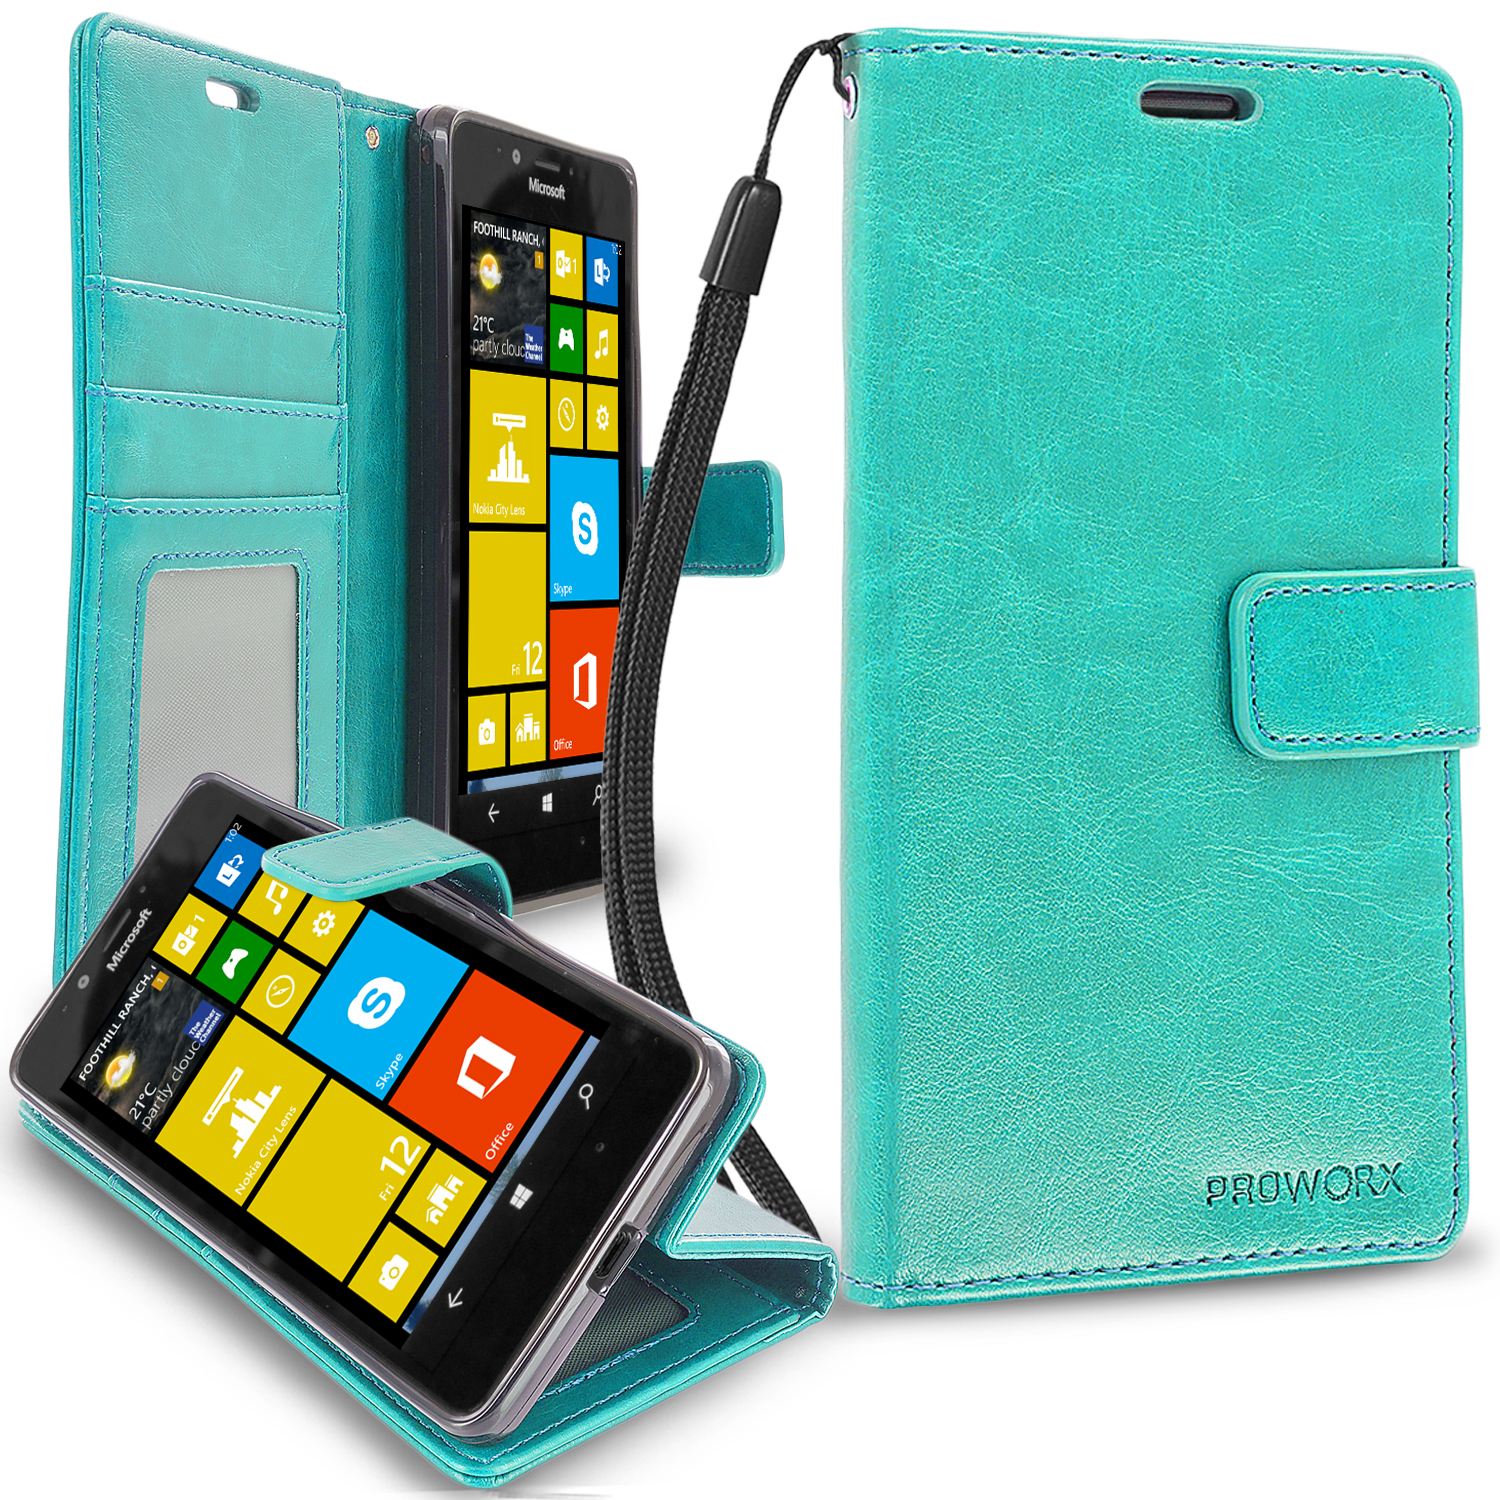 Microsoft Lumia 950 Mint Green ProWorx Wallet Case Luxury PU Leather Case Cover With Card Slots & Stand